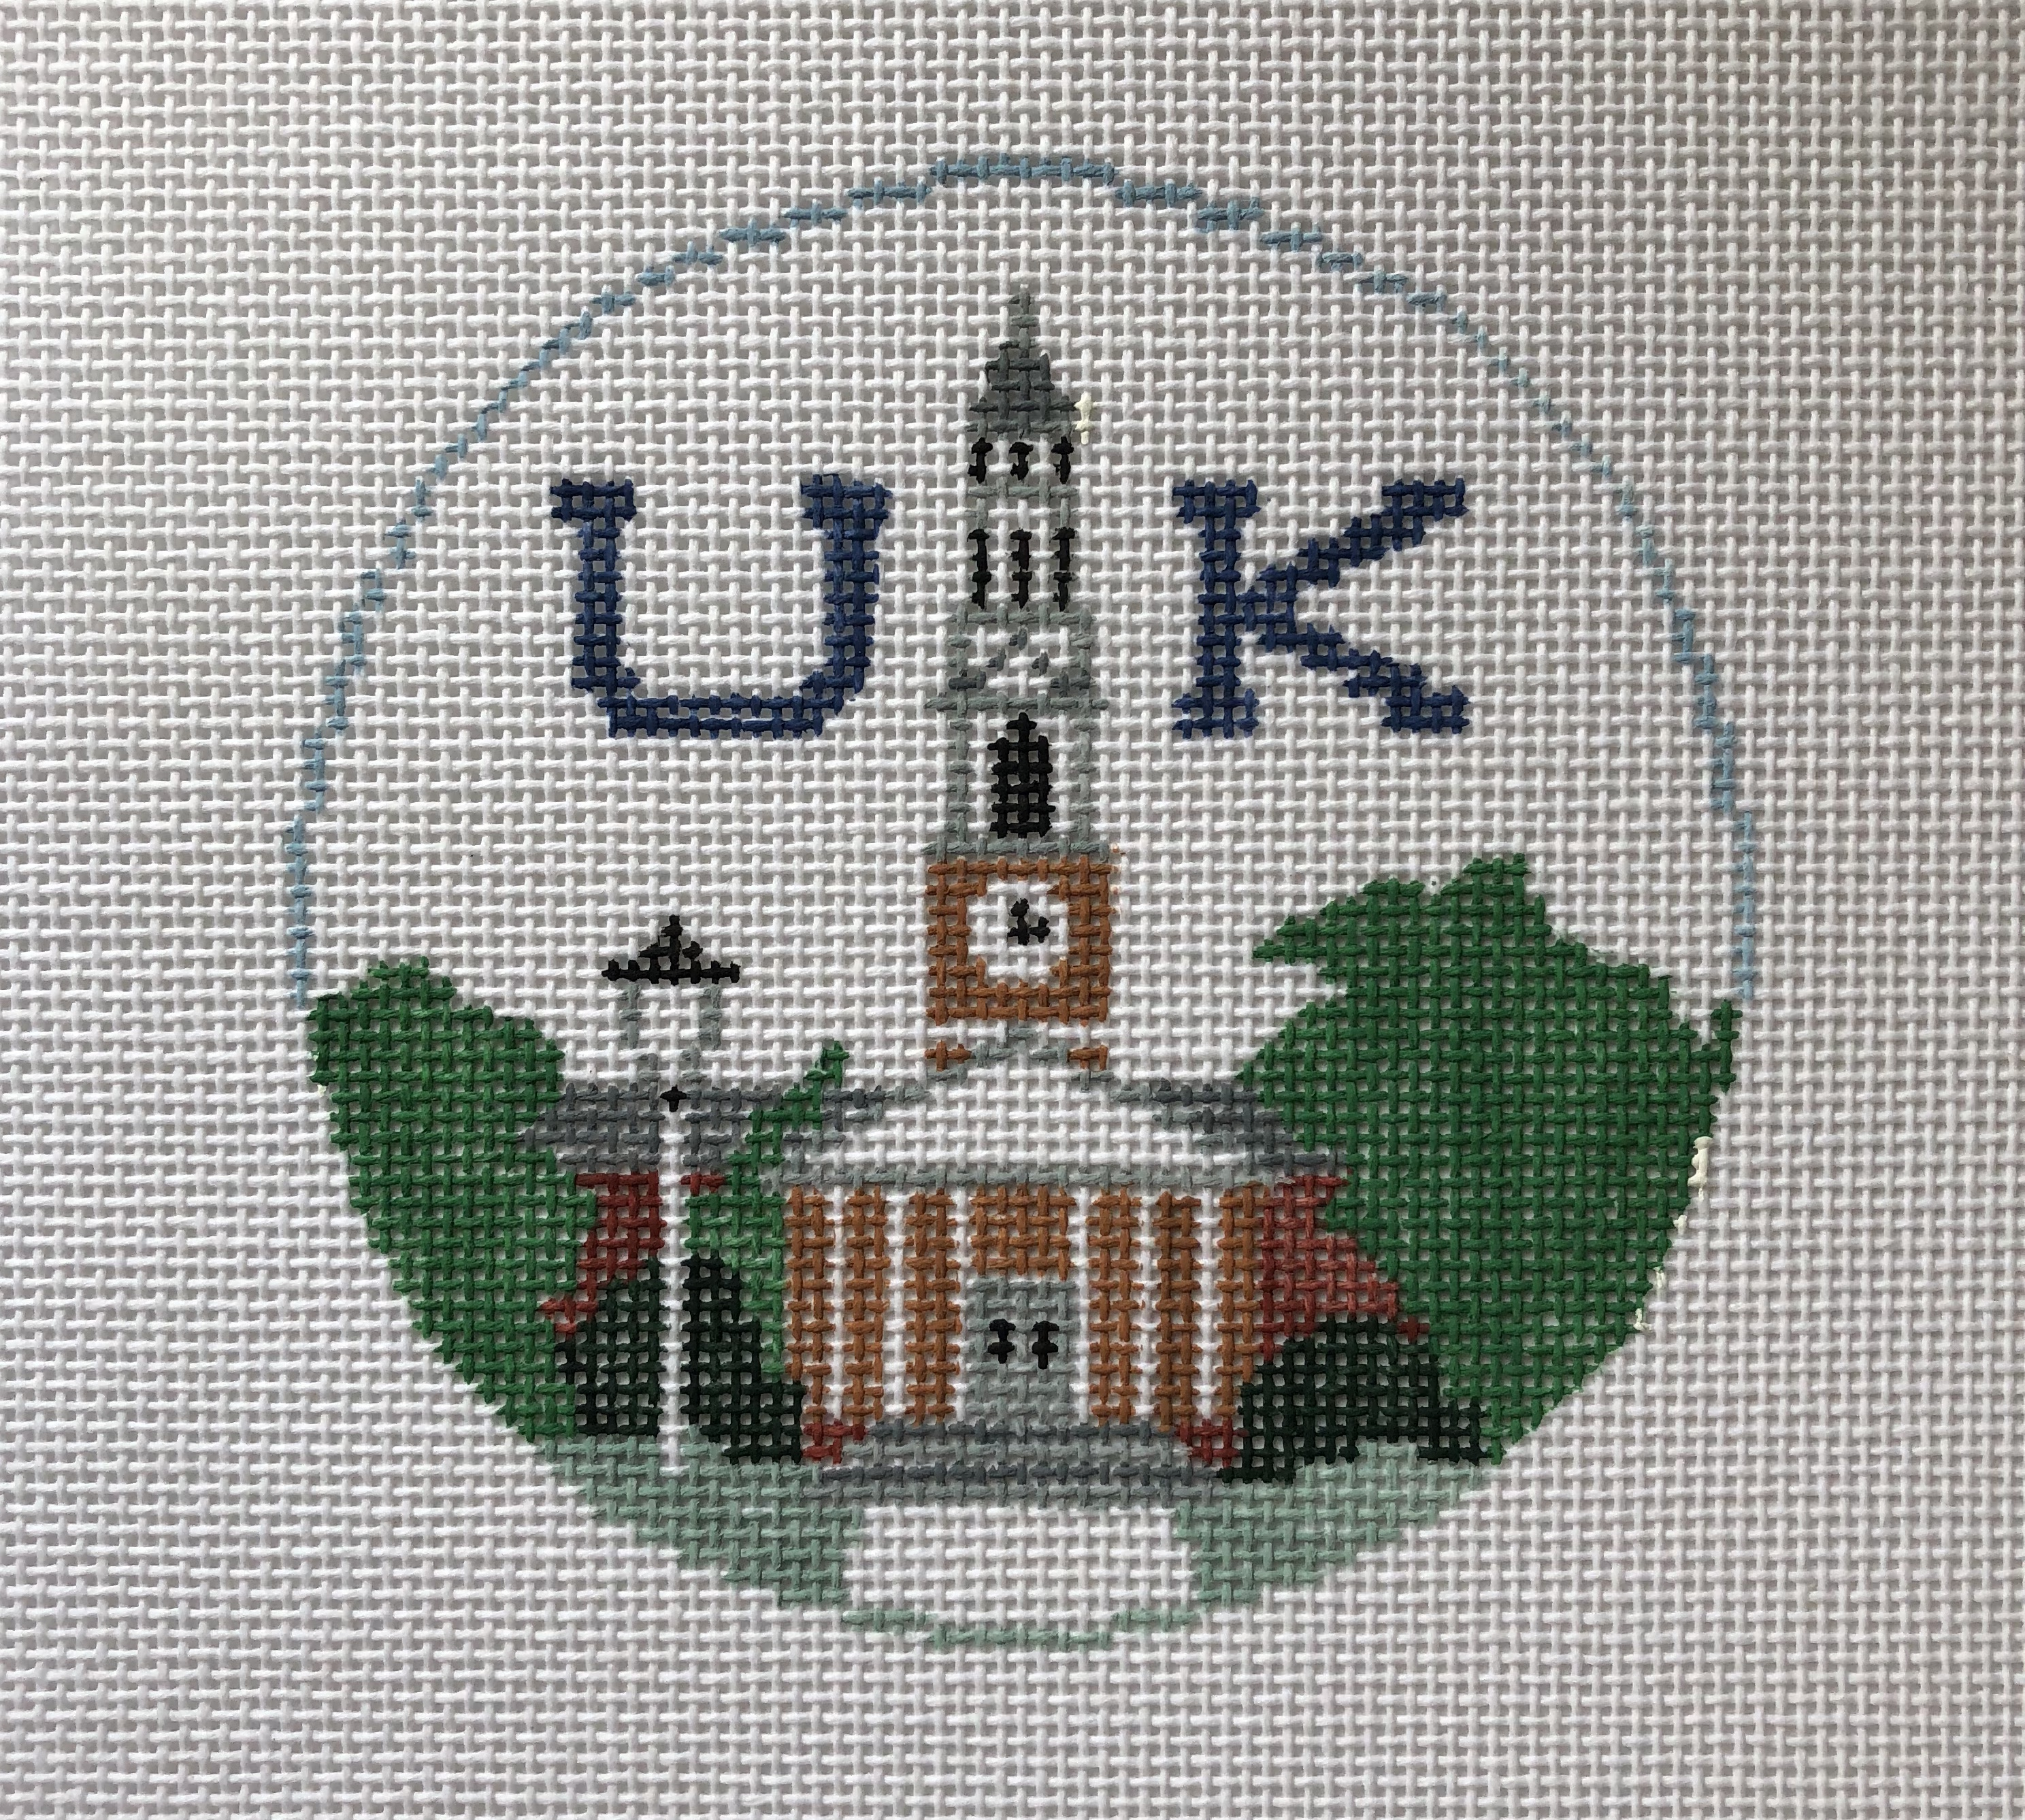 College Round - University of Kentucky